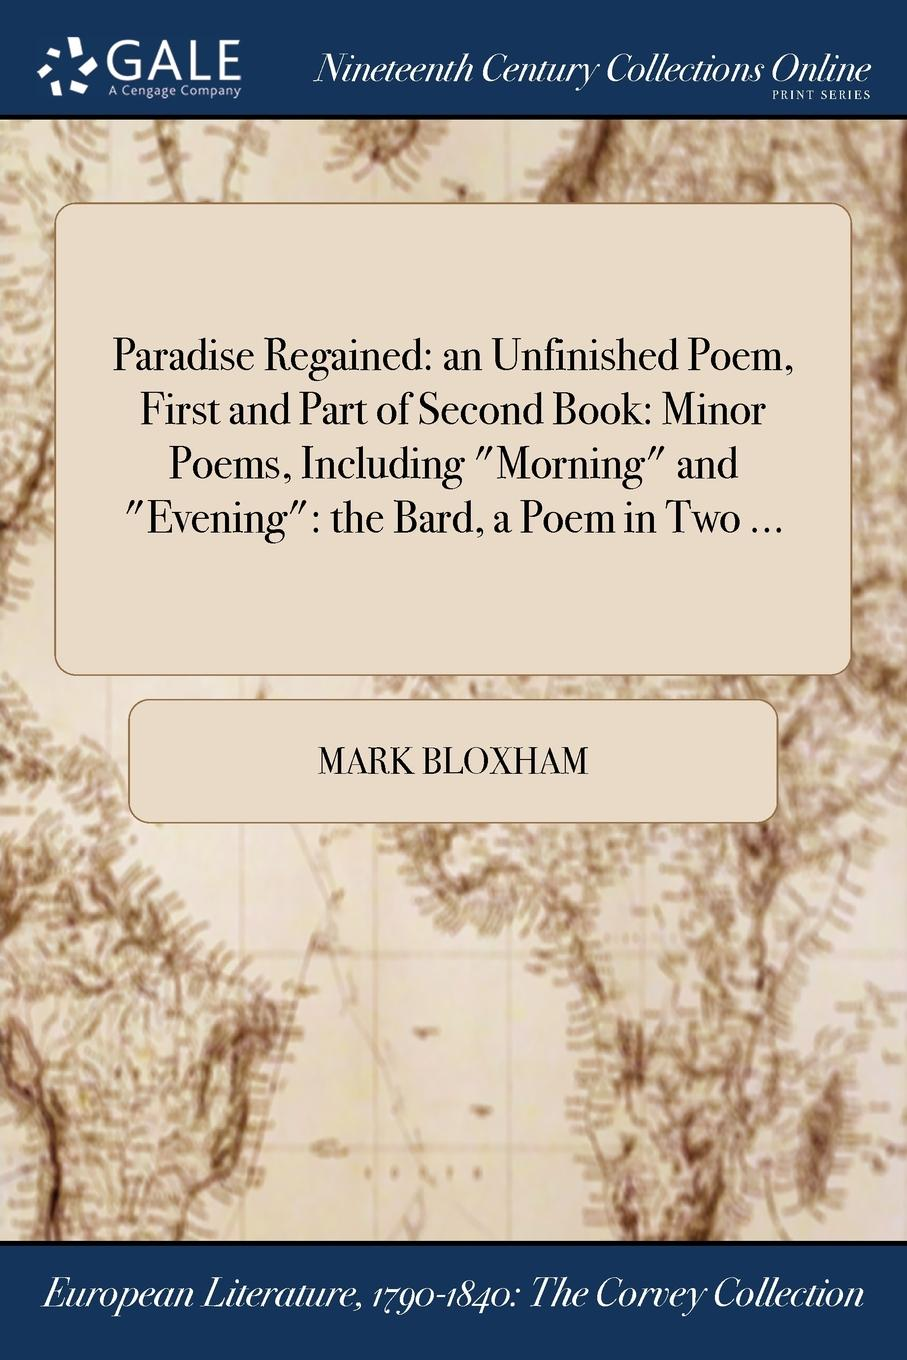 """Mark Bloxham Paradise Regained. an Unfinished Poem, First and Part of Second Book: Minor Poems, Including """"Morning"""" and """"Evening"""": the Bard, a Poem in Two ..."""